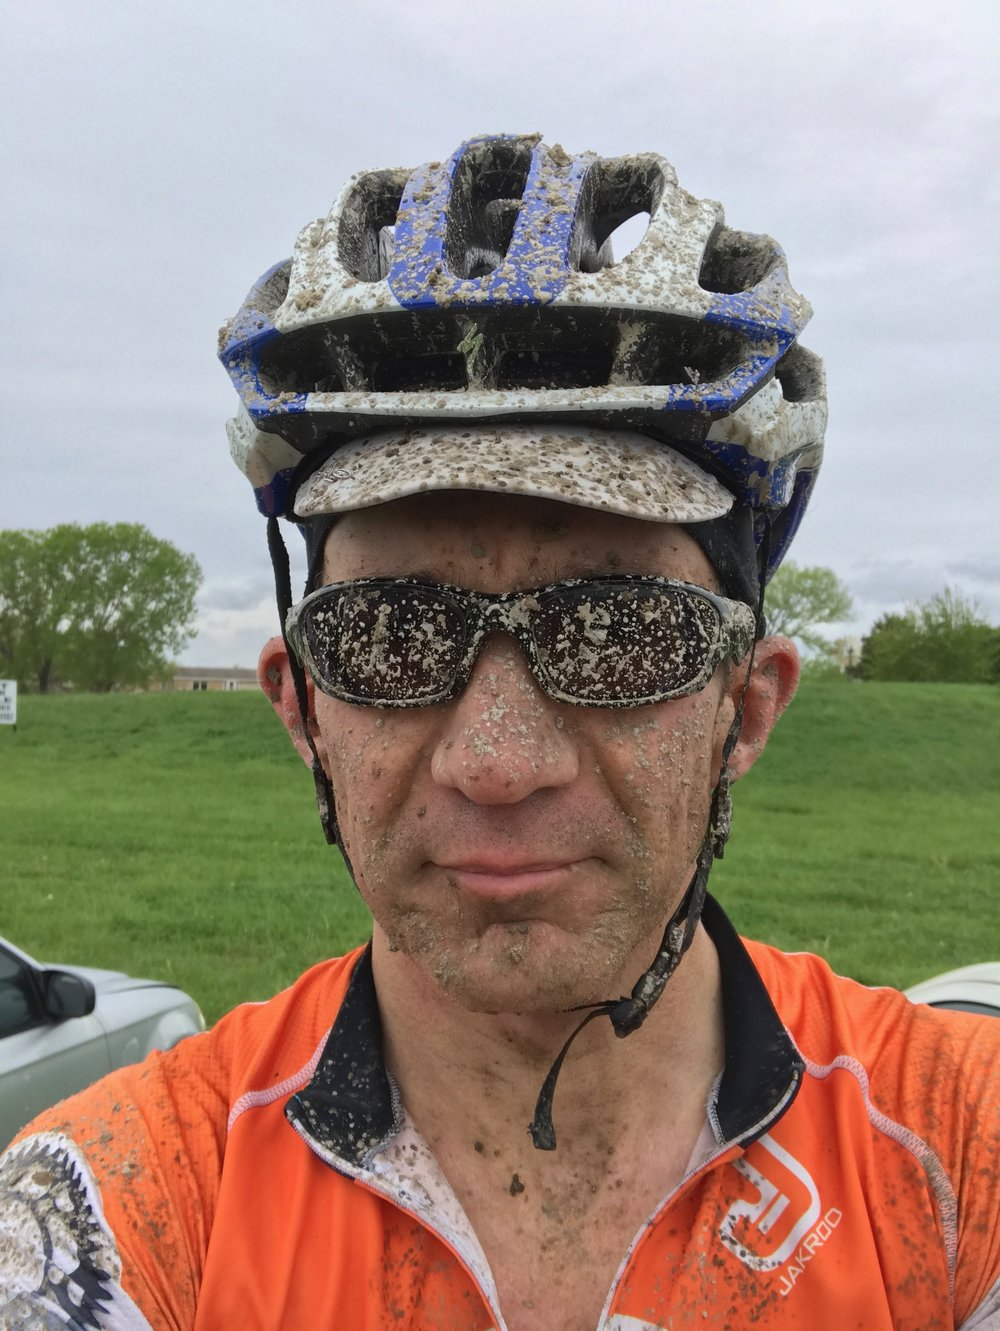 It was very, very muddy at the Rage of Oz in Benton, Kansas. I could see much better than my glasses would indicate, though.